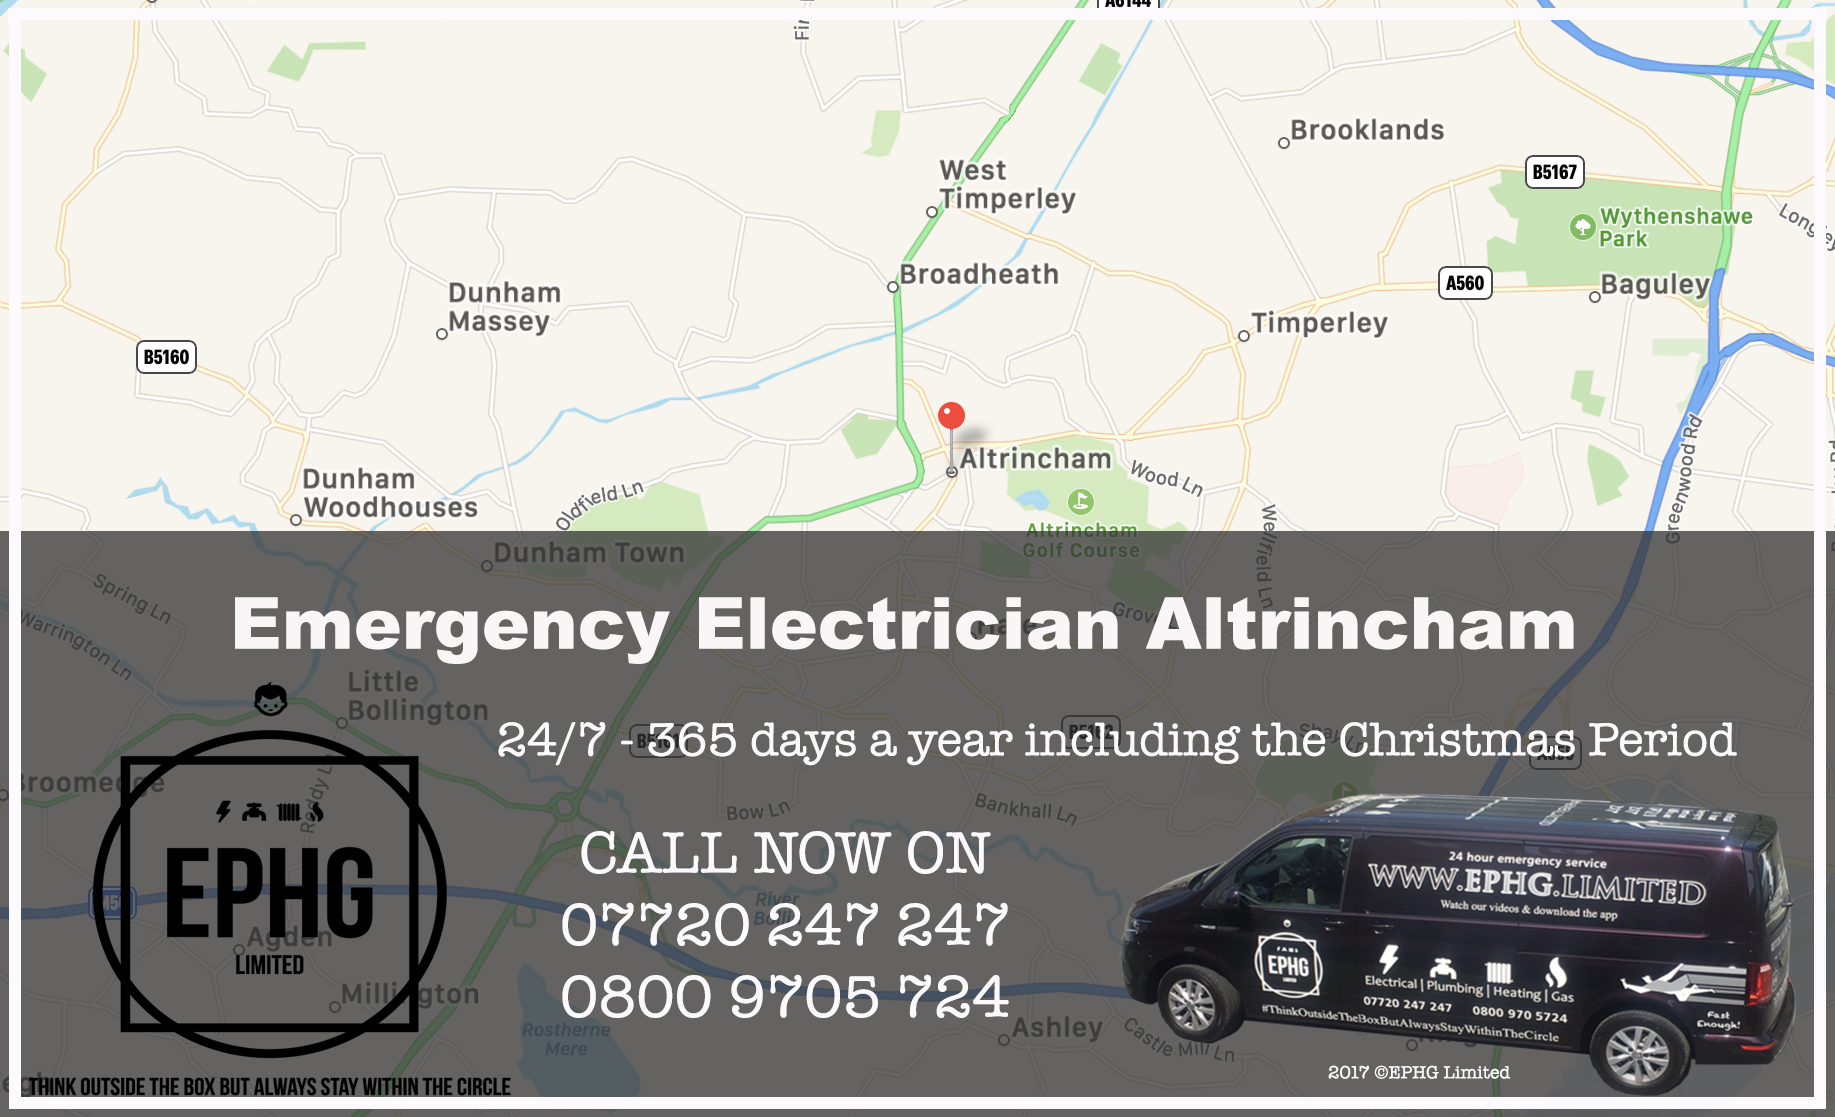 Emergency Electrician Altrincham